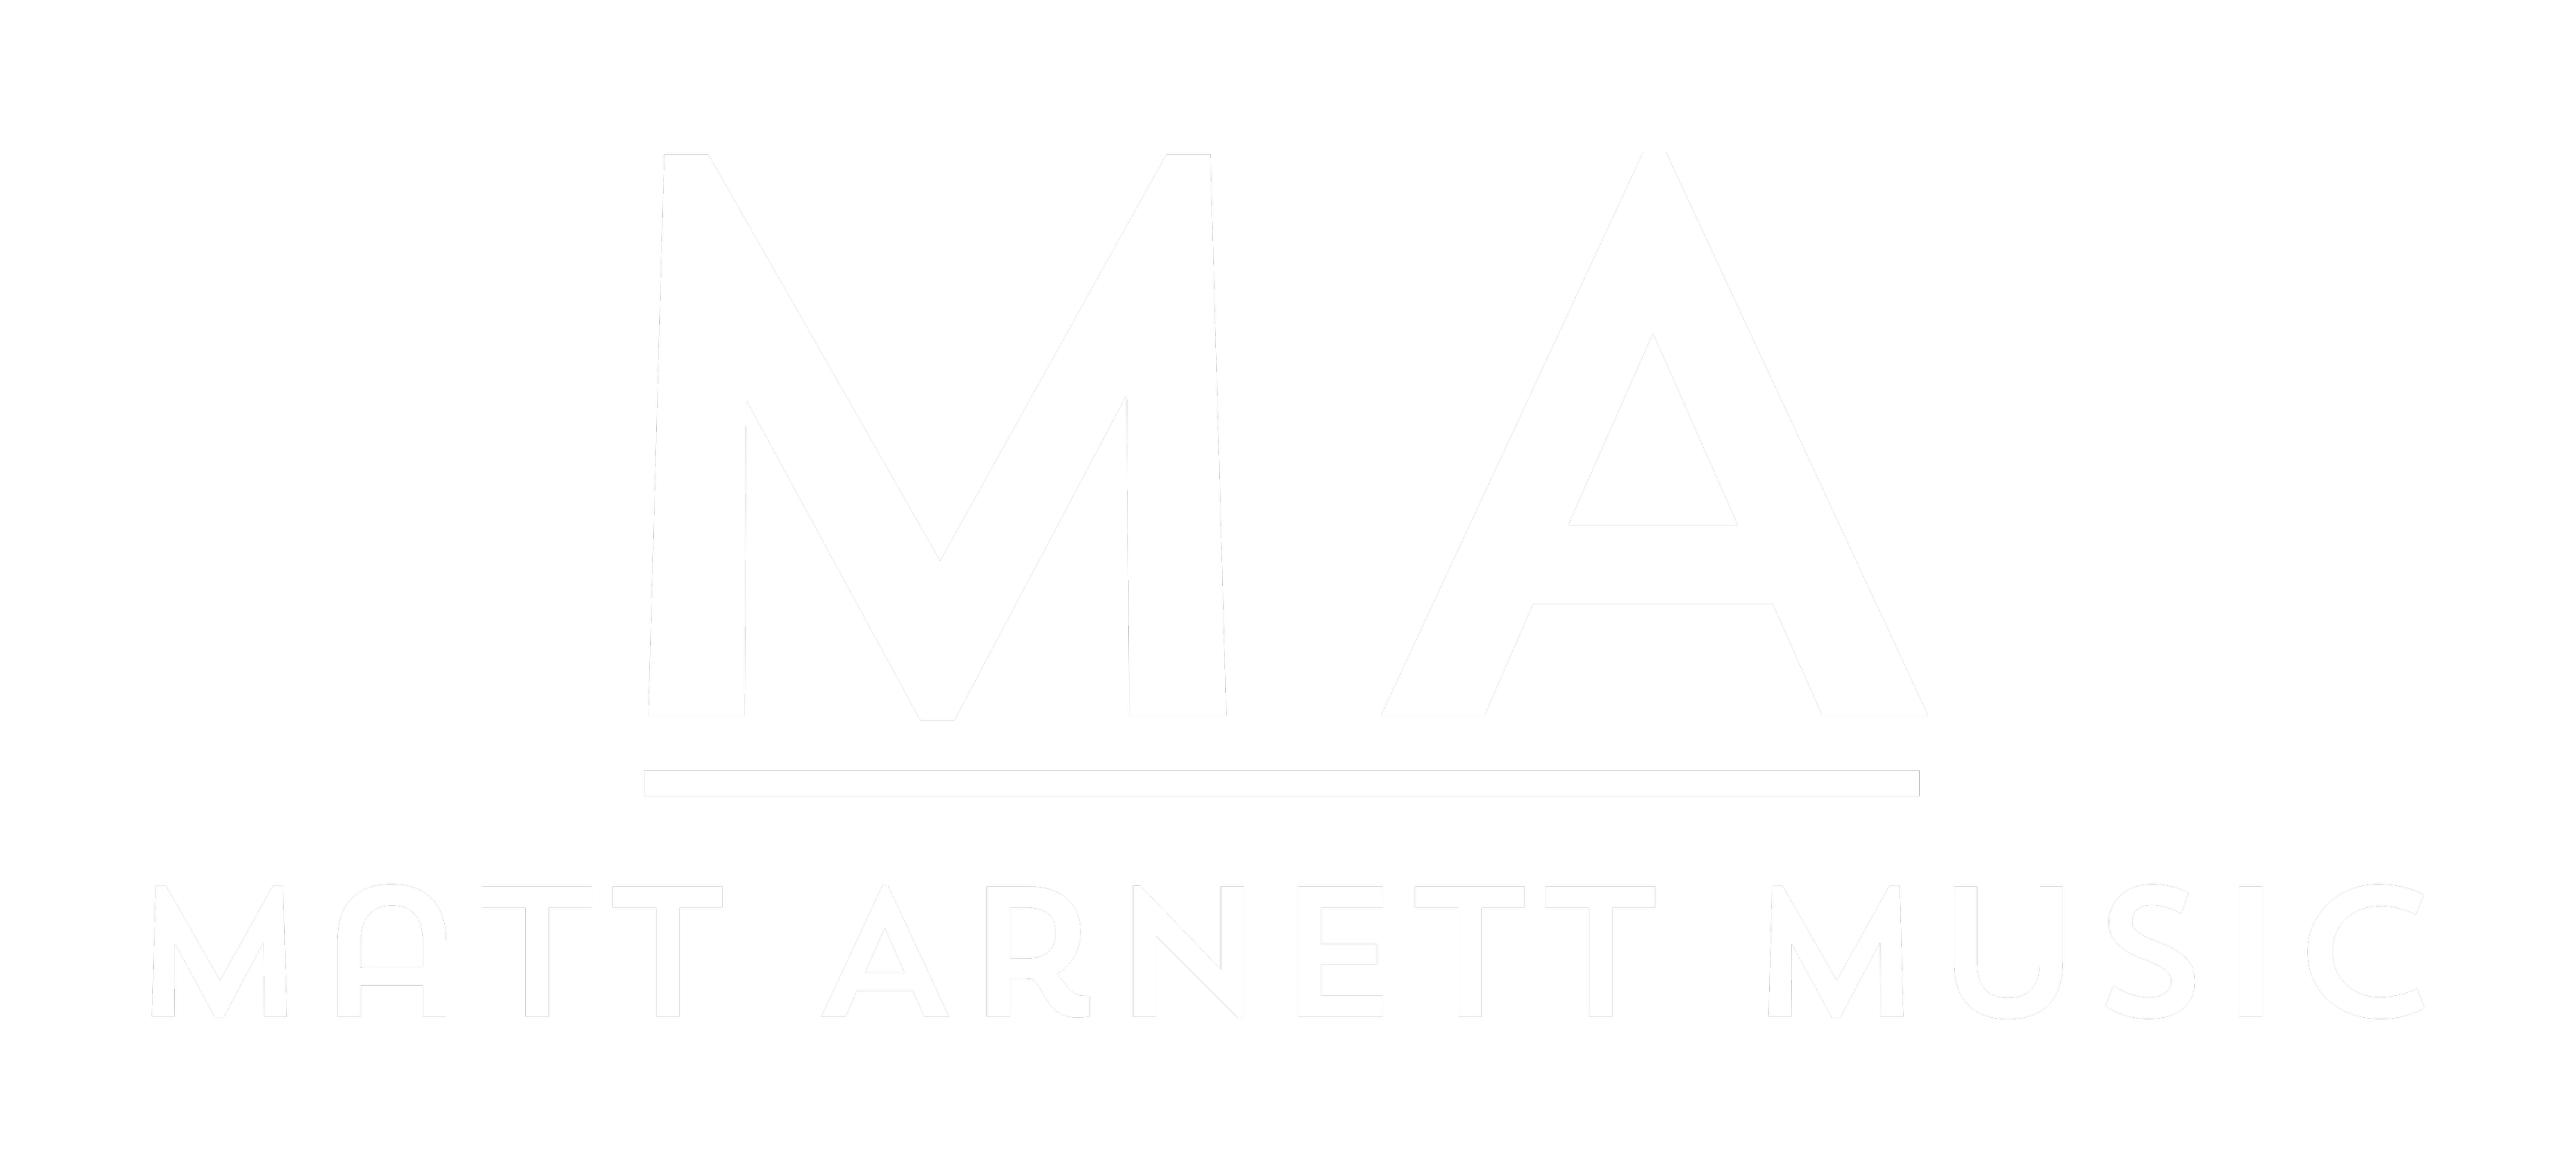 Matt Arnett Music